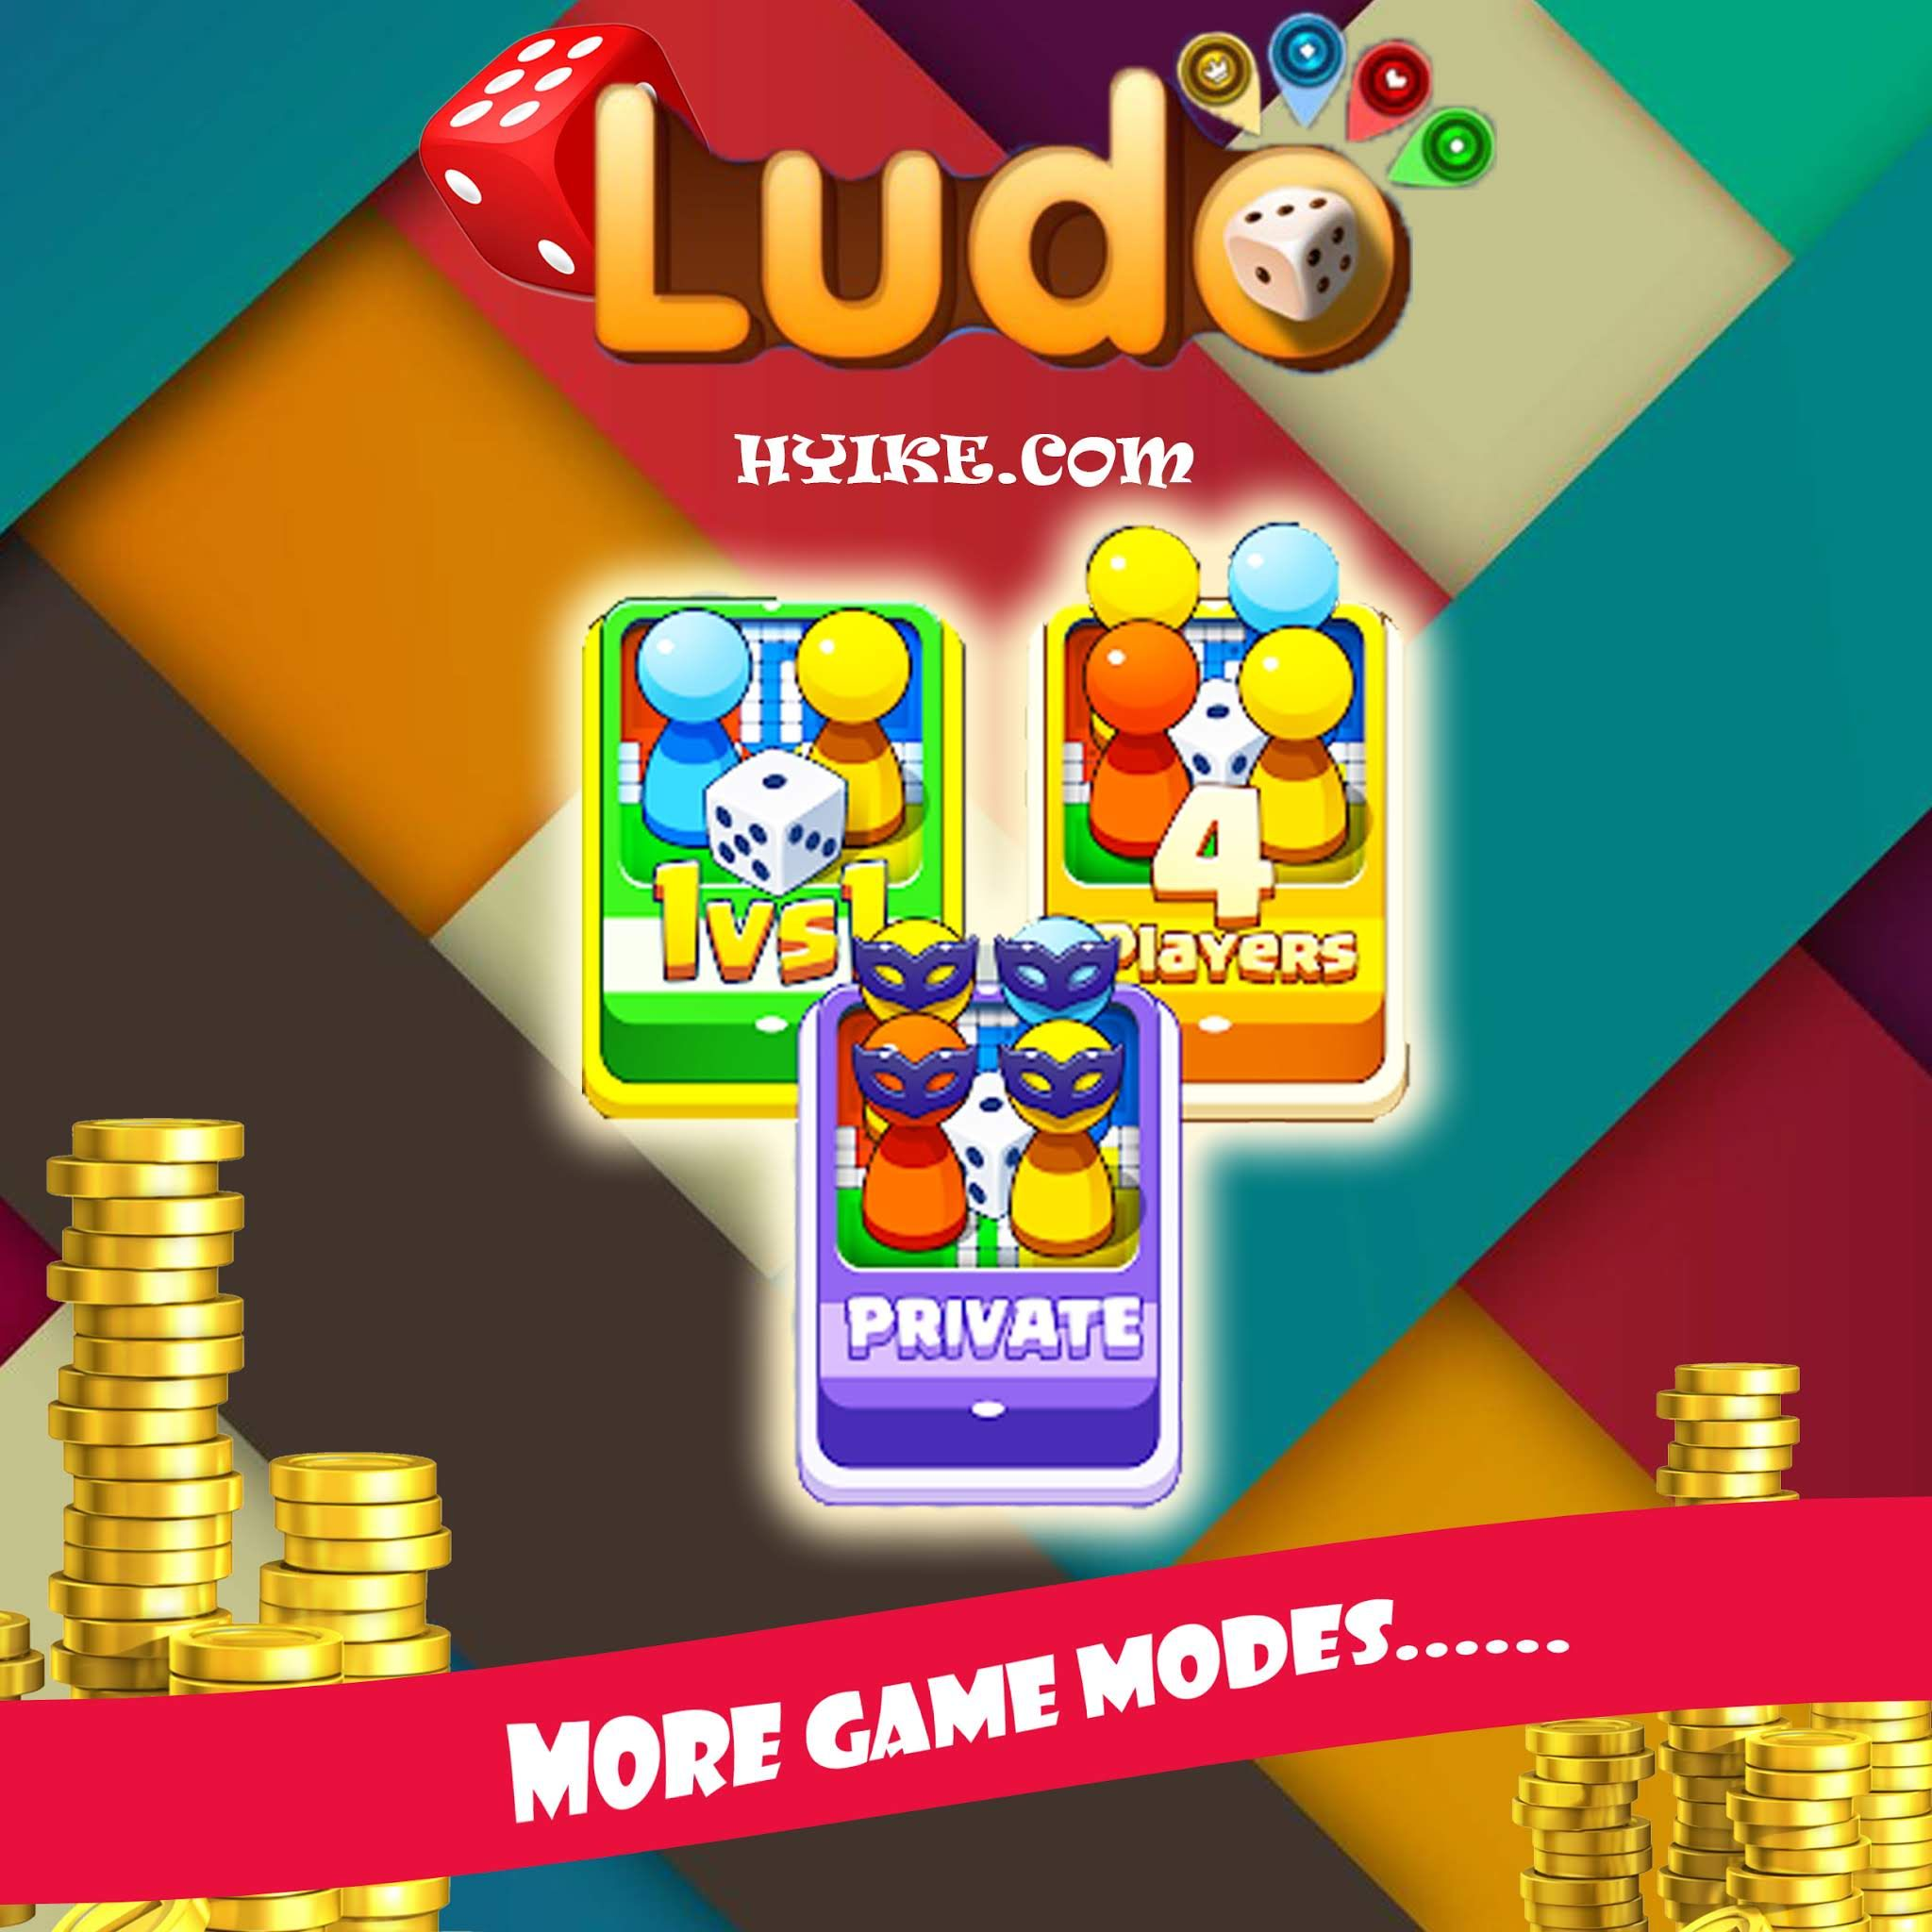 Play More, Win More & Be a Skill Leader. ludo hyikeludo